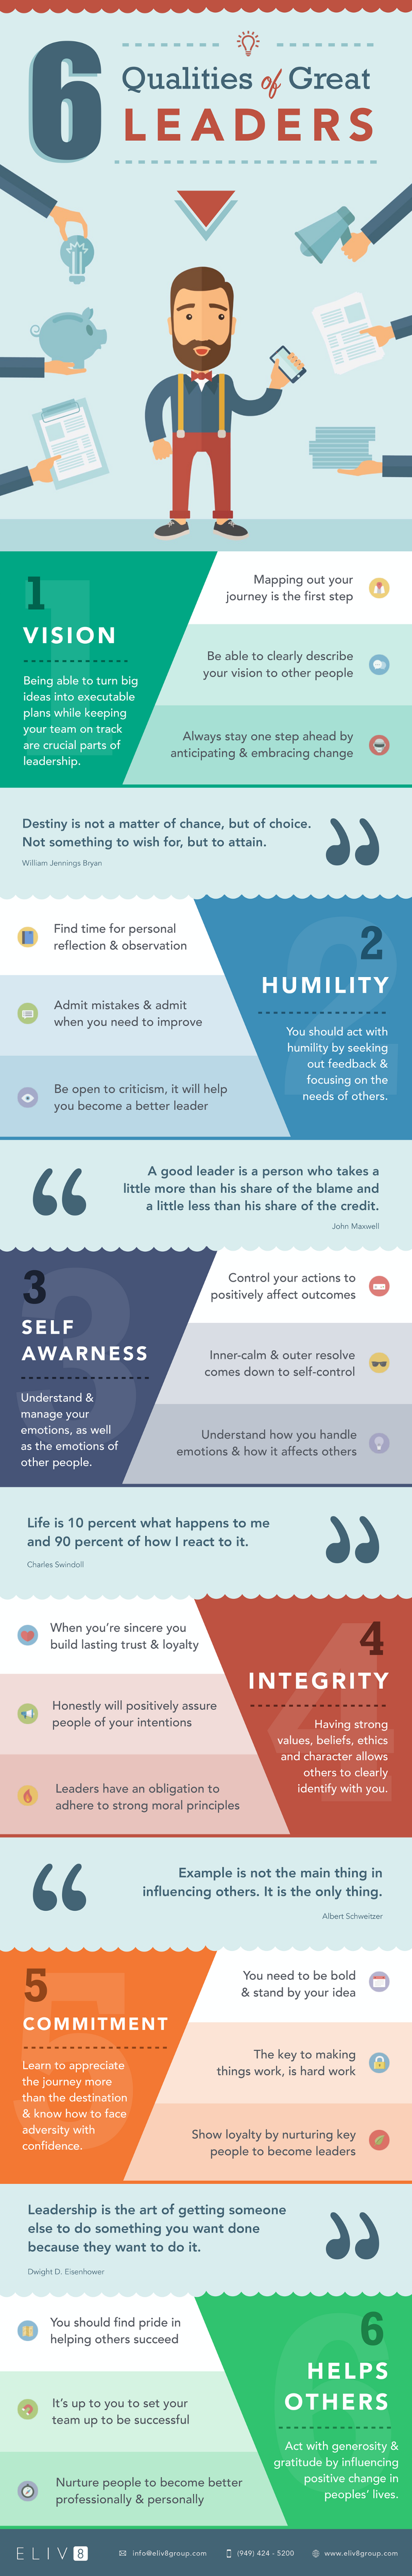 Characteristics-of-a-Great-Leader